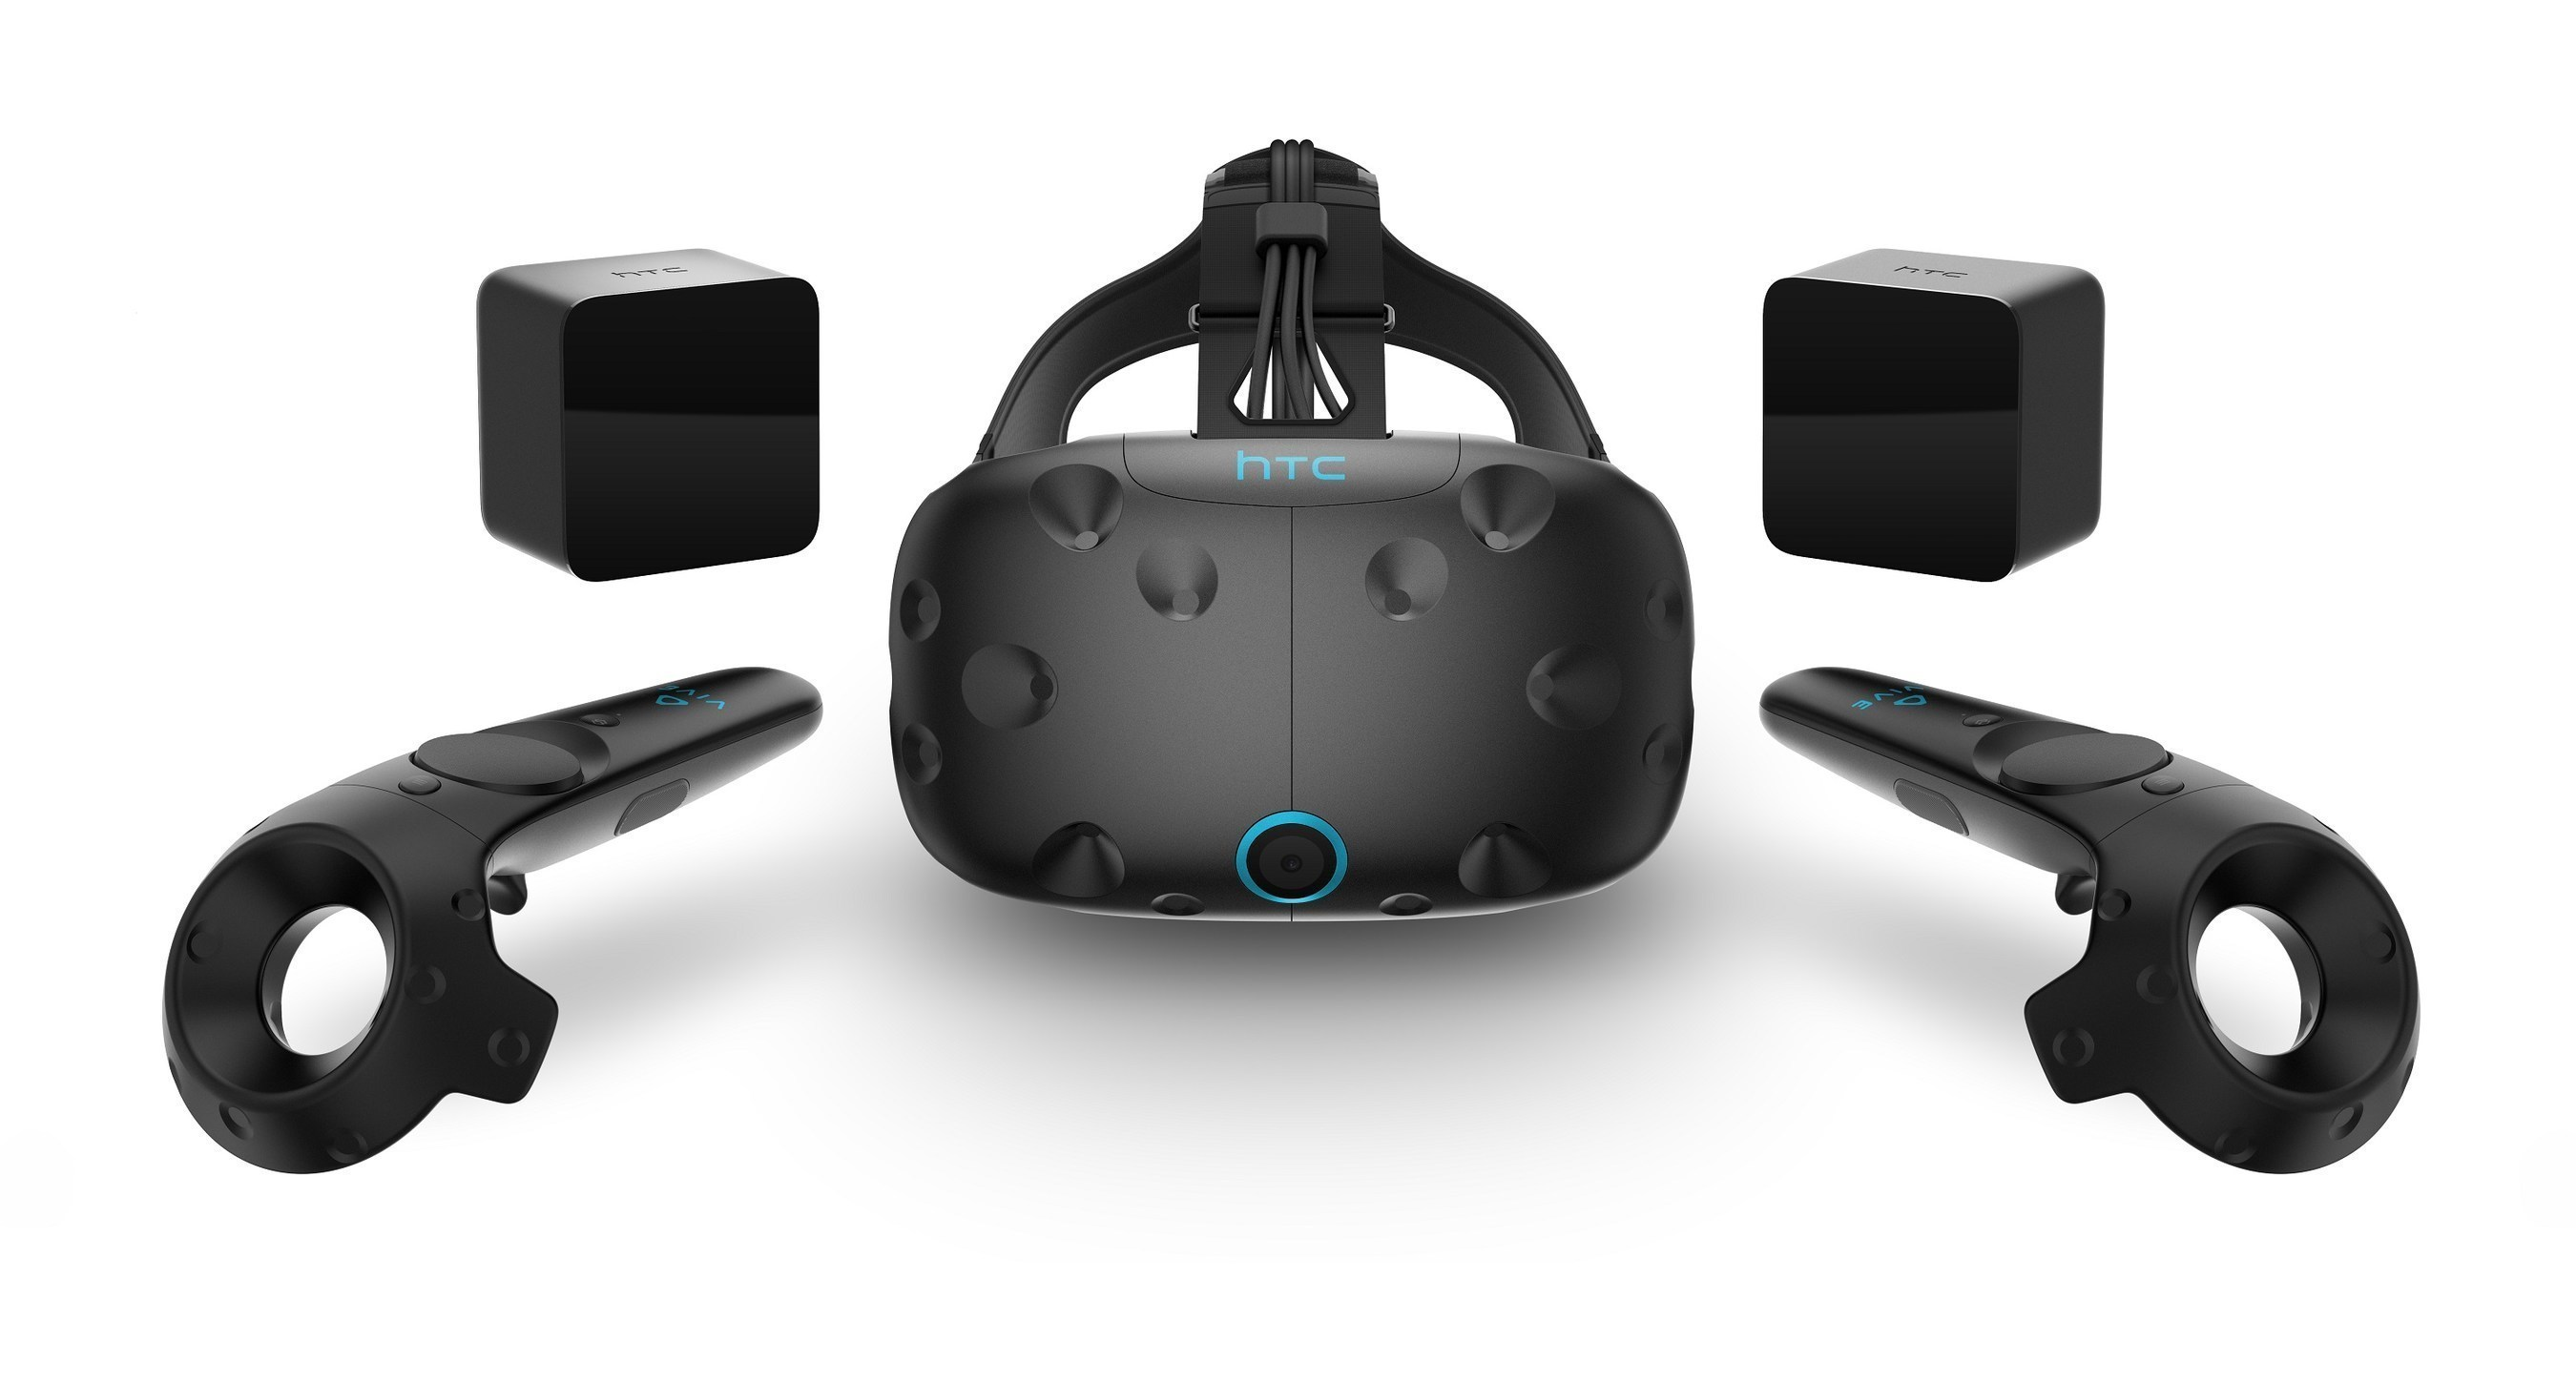 HTC announces new service to drive business uses of VR with HTC Vive